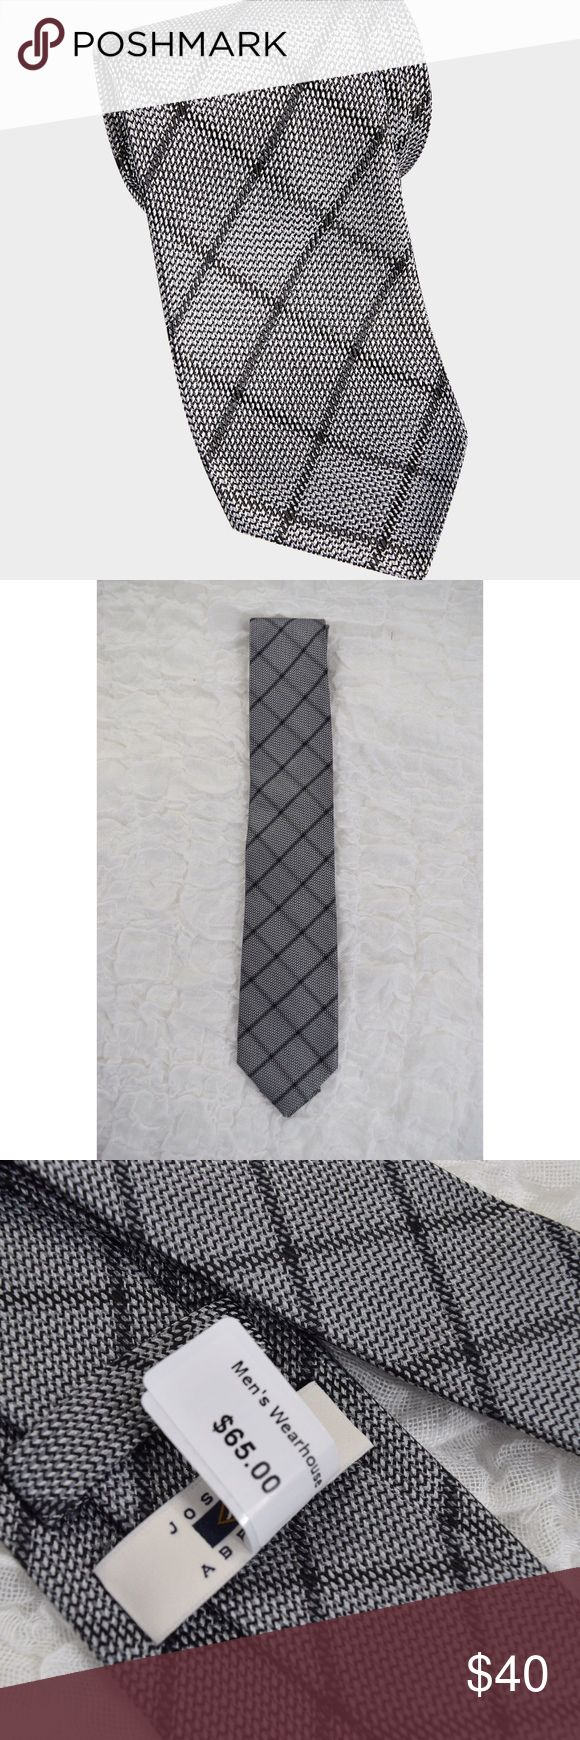 NWT Joseph Abboud Gray Diamond Check Neck Tie Joseph Abboud tie🔹Brand new with tags🔹MSRP $65🔹Gray And black diamond pattern🔹Narrow🔹3 inches wide at the widest part🔹100% silk🔹Smoke and pet free home Joseph Abboud Accessories Ties